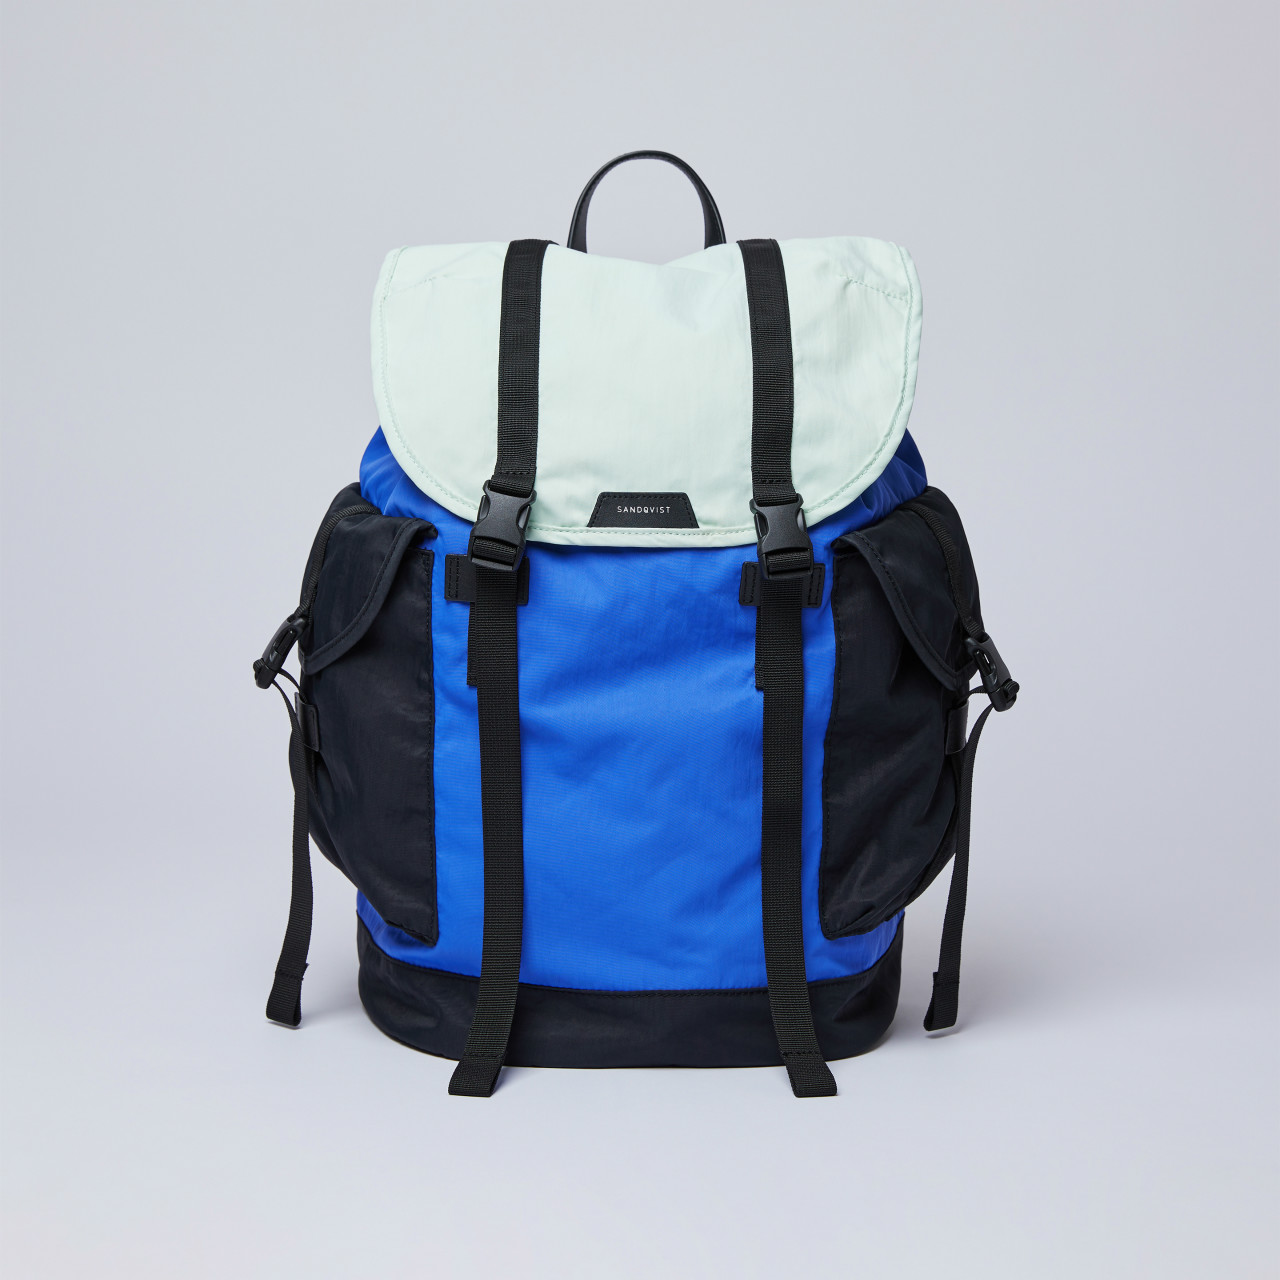 サムネイル:SANDQVIST サンドクヴィスト CHARLIE Multi color Blue/Green/Black leather